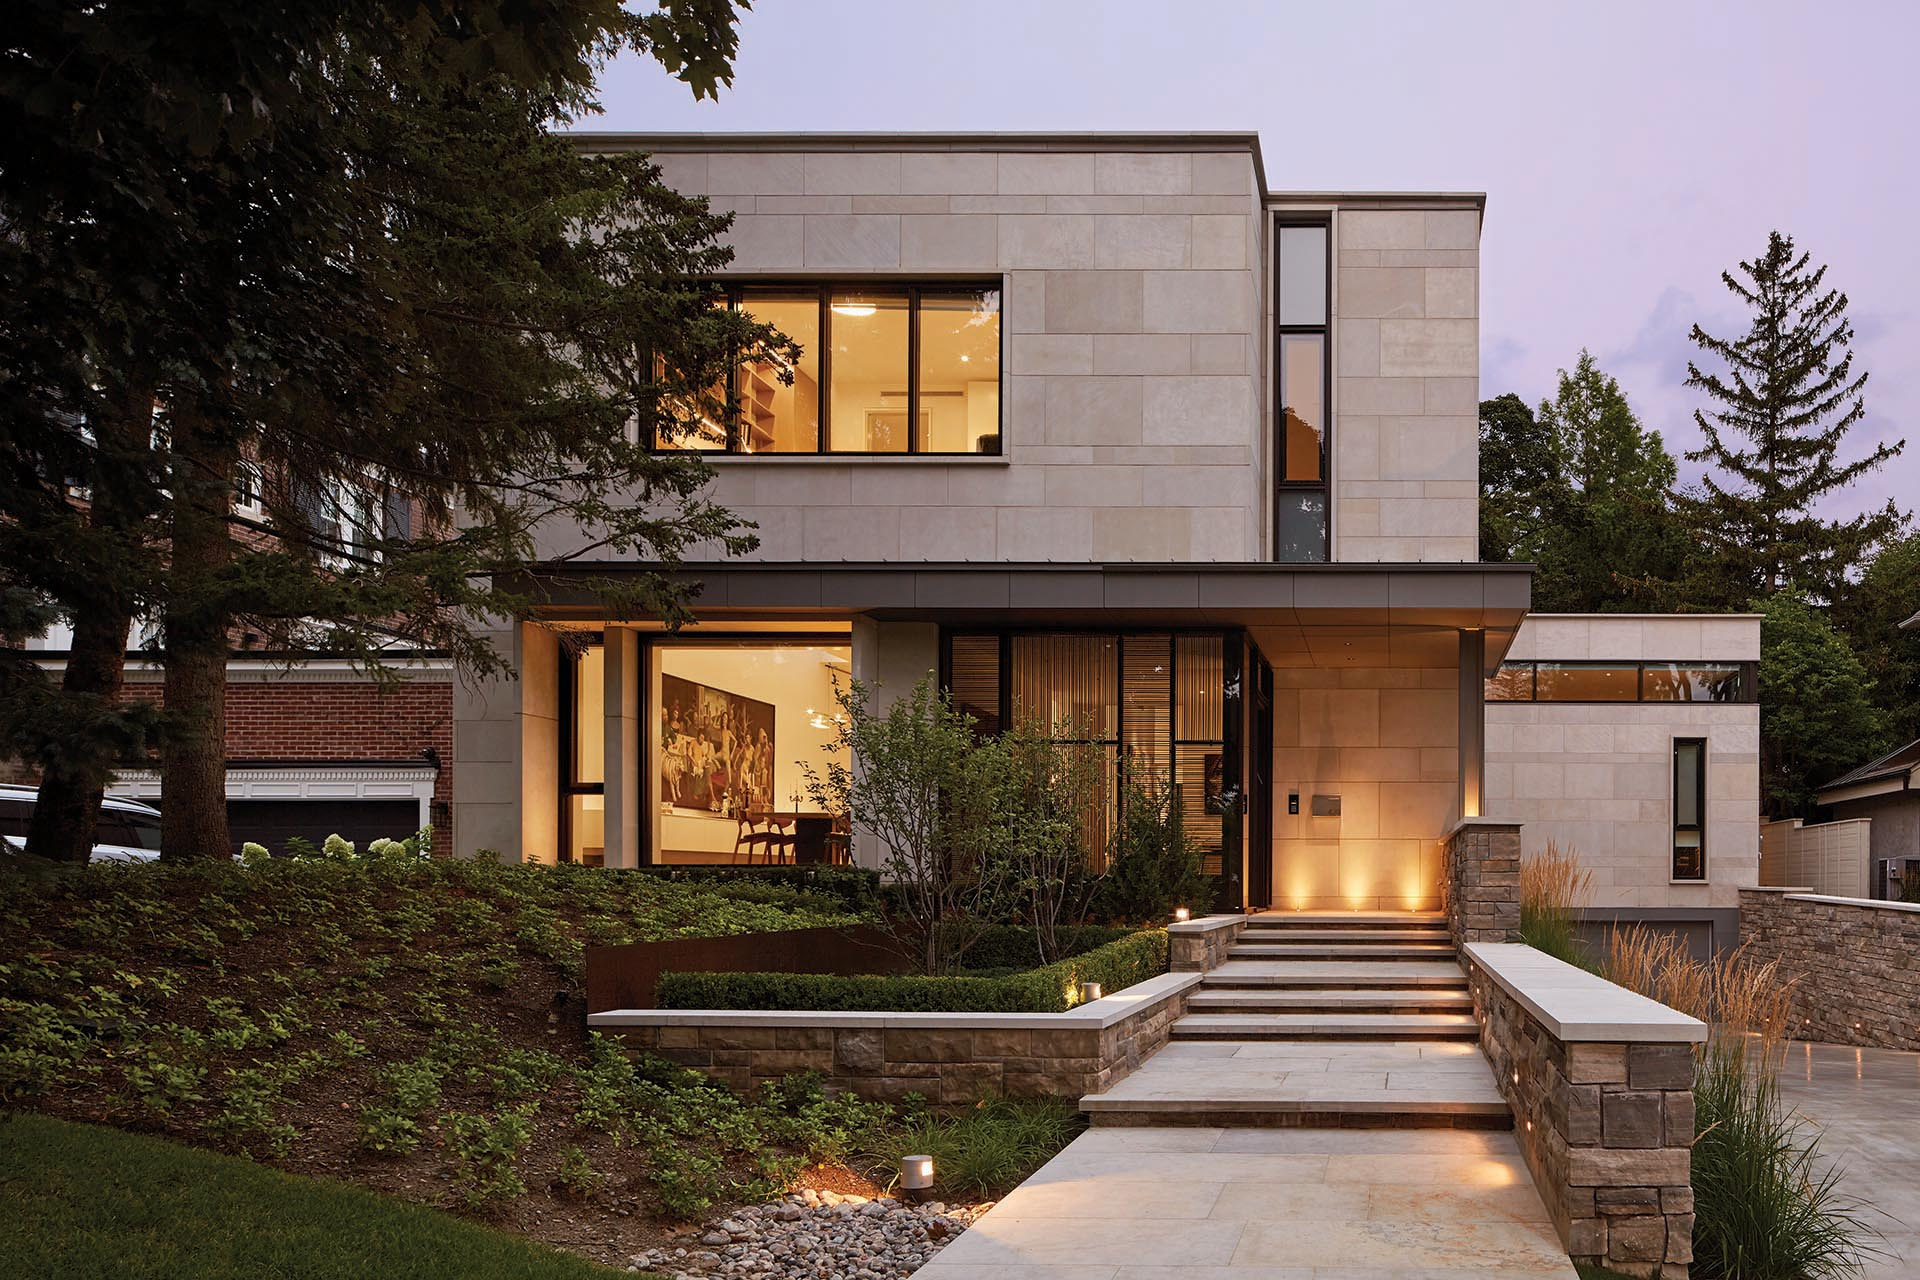 Indiana Limestone and split faced Ontario Algonquin stone clad the exterior of this modern house.